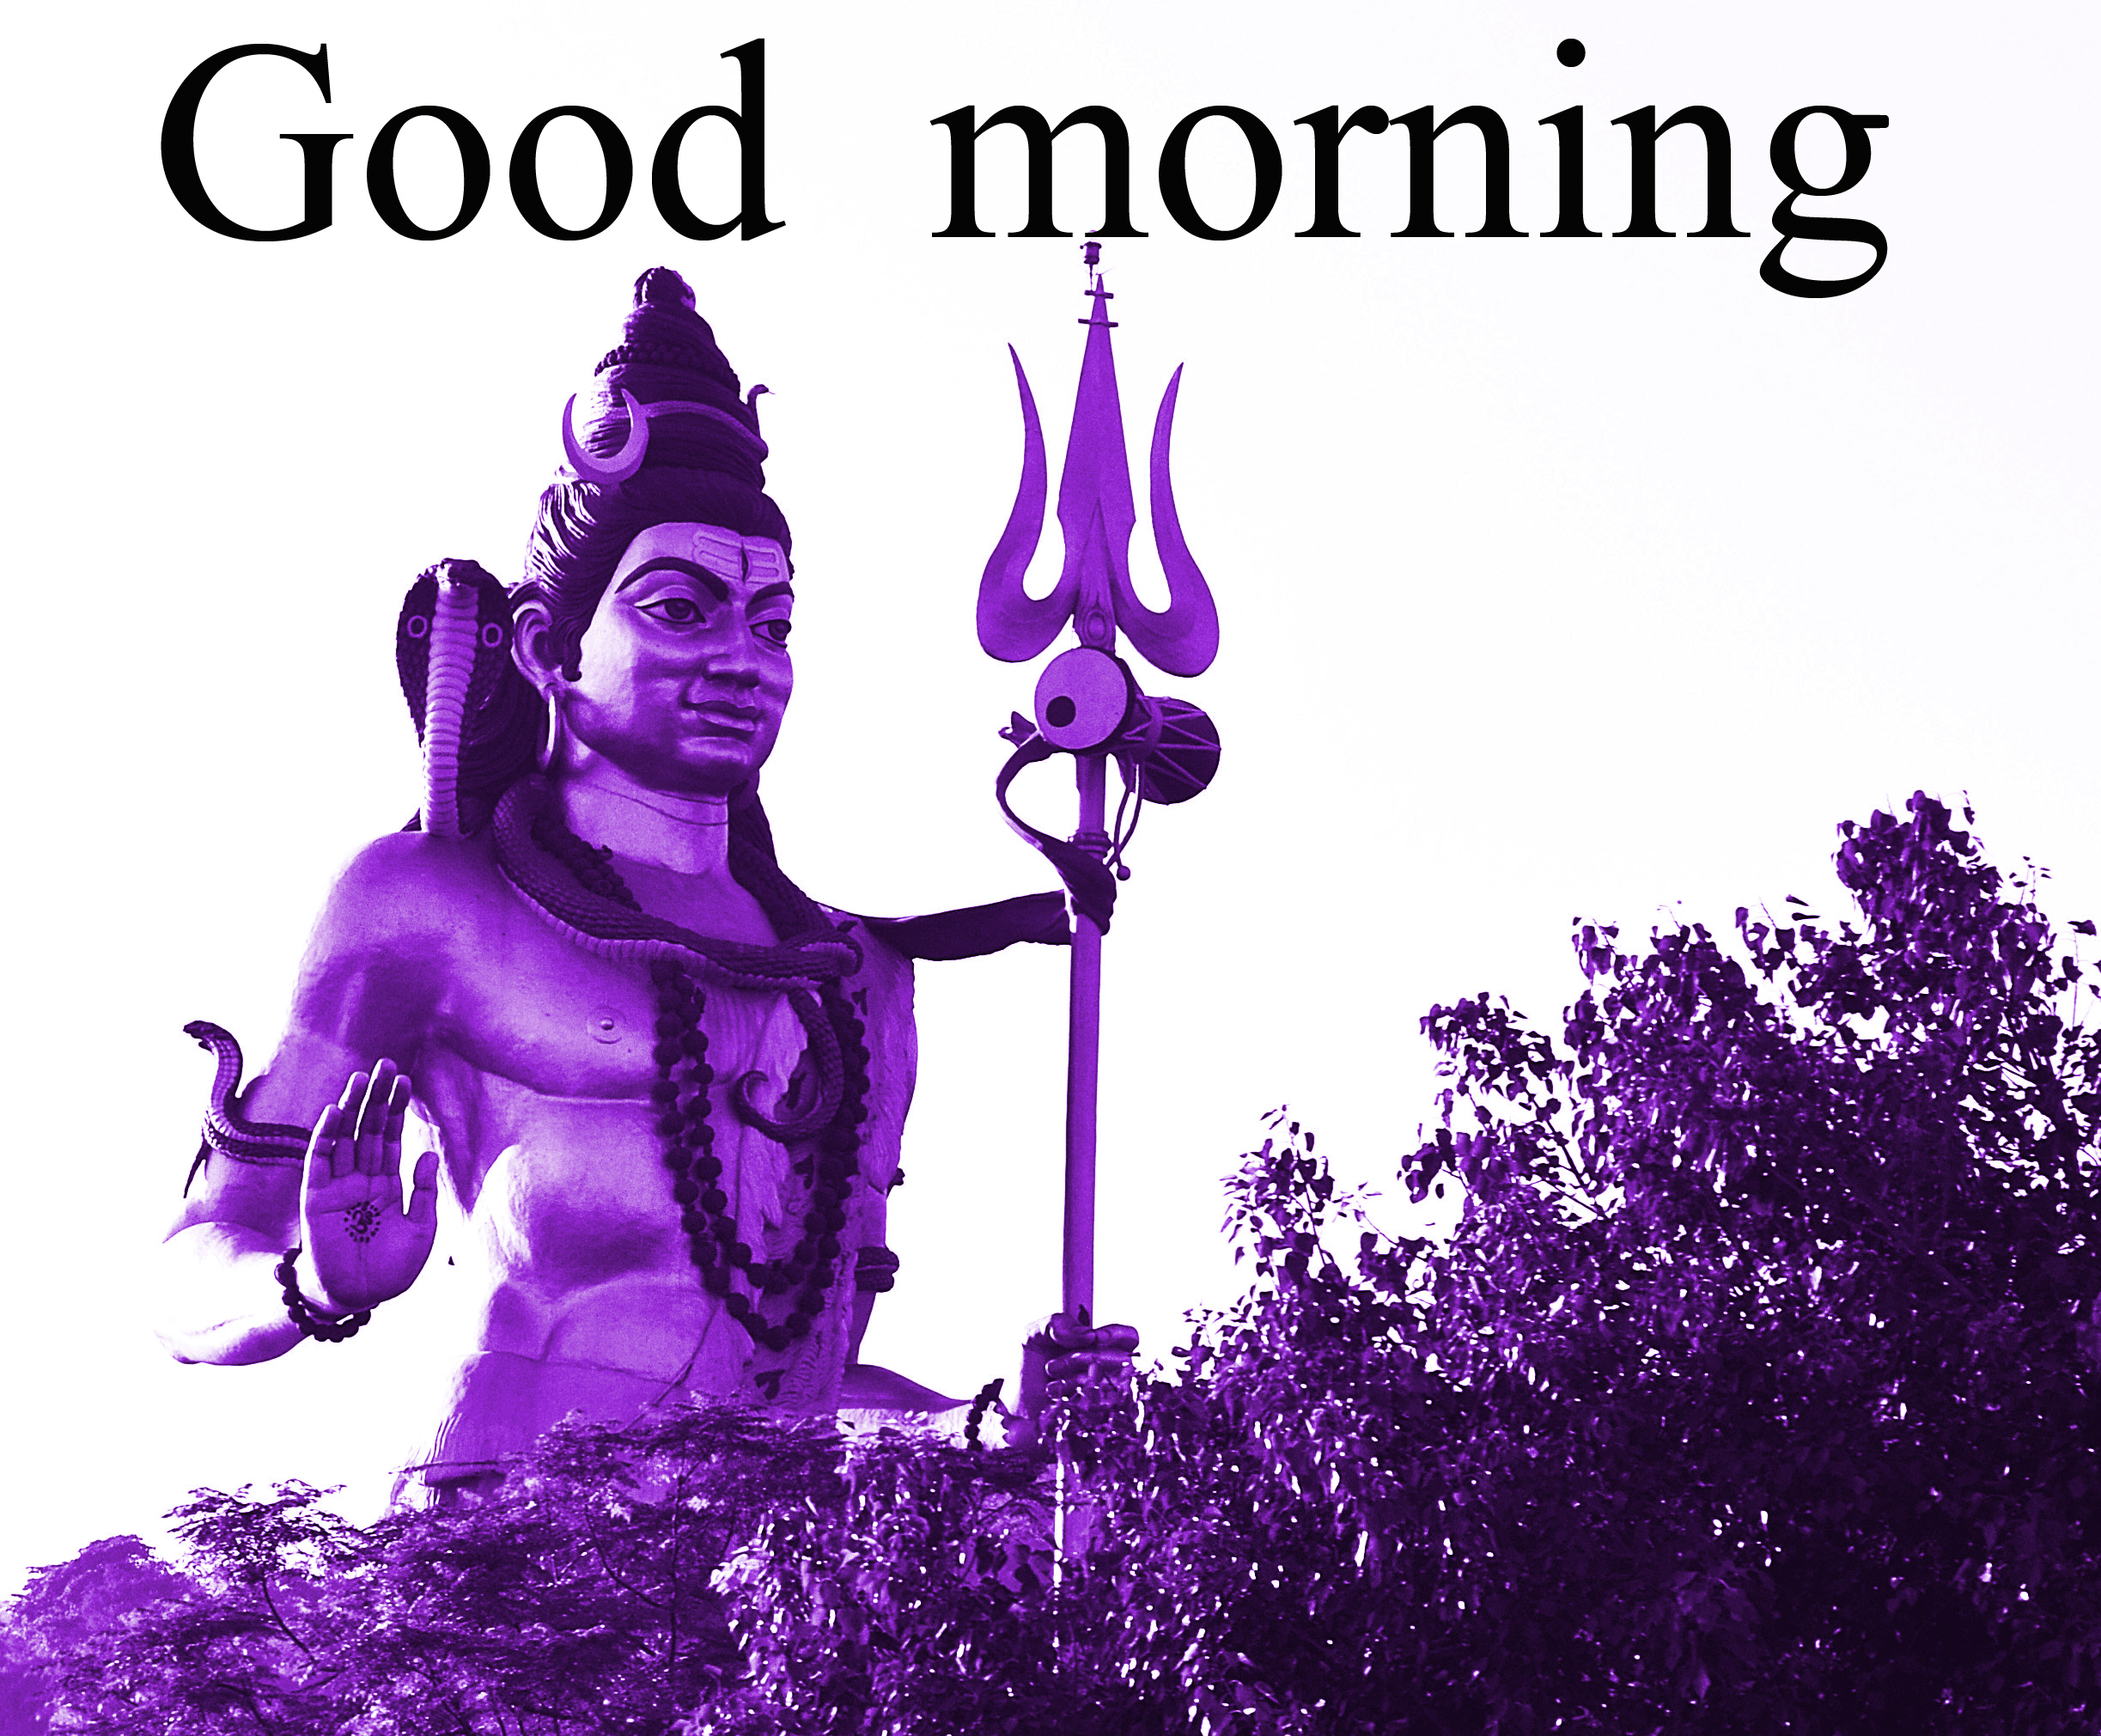 LORD SHIVA GOOD MORNING WISHES IMAGES PICS FREE DOWNLOAD